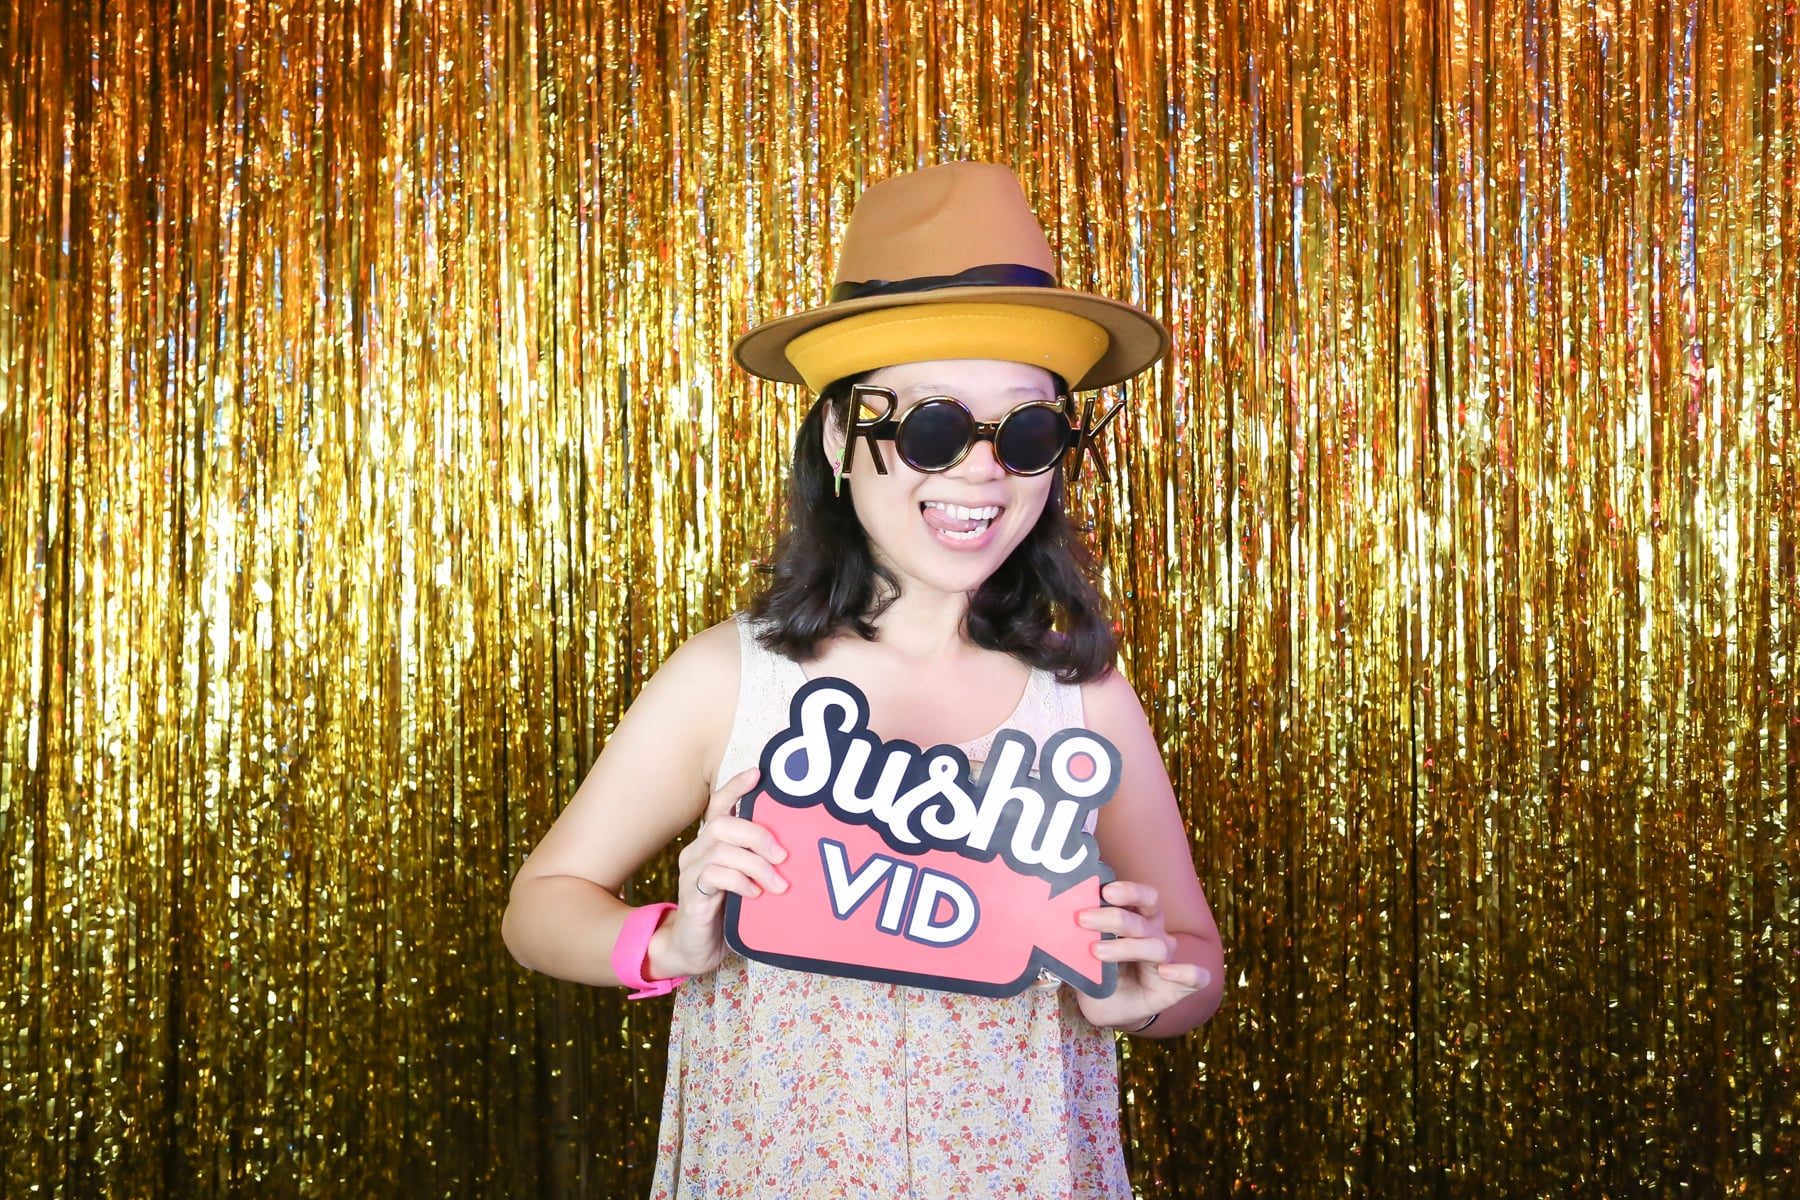 Sushivid+crunch+tagbooth+78